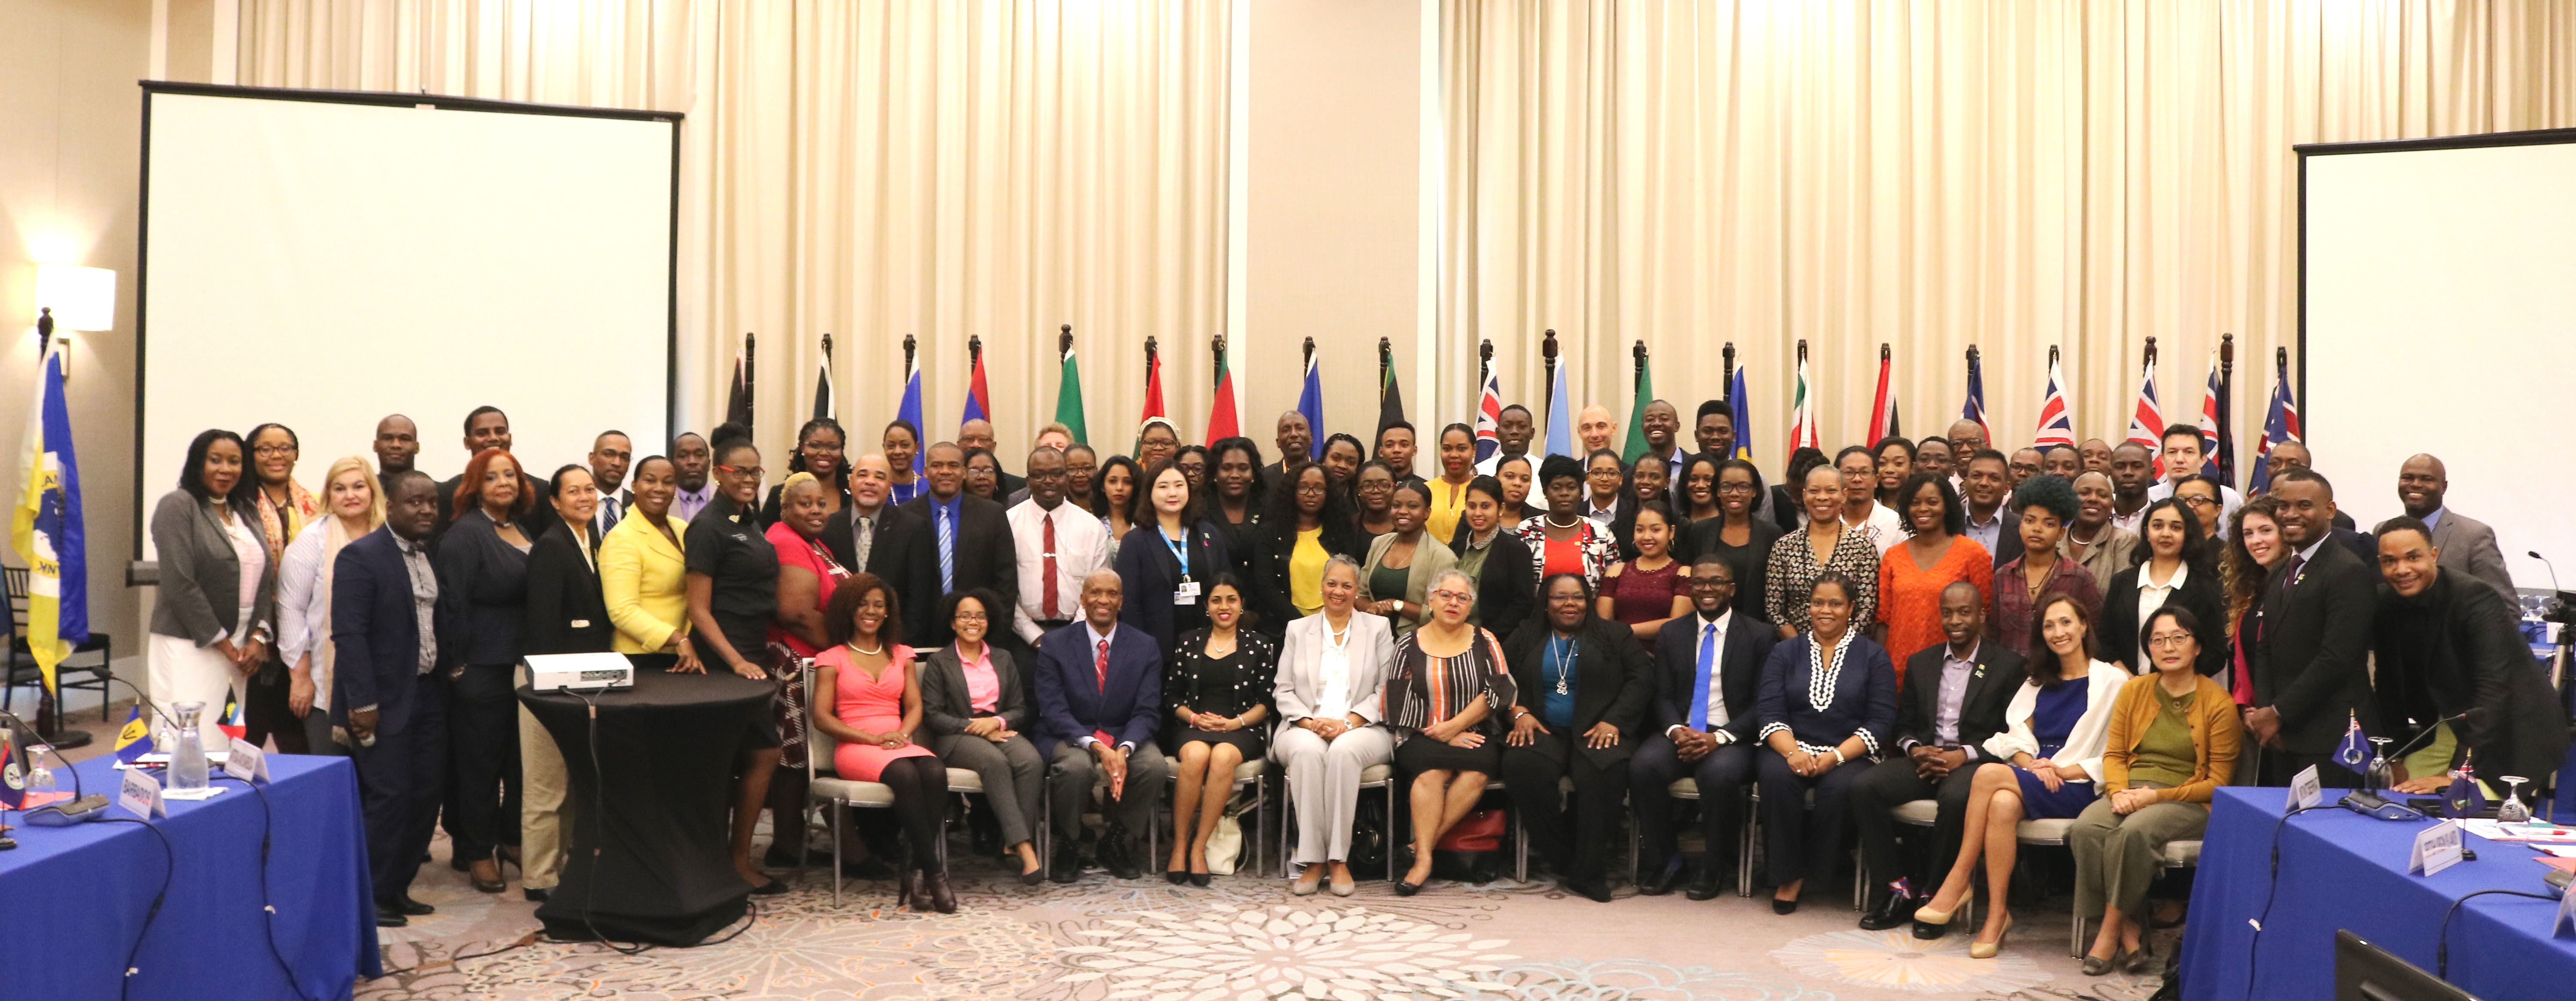 A group photo following the opening of the Caribbean Forum on Youth Population and Development